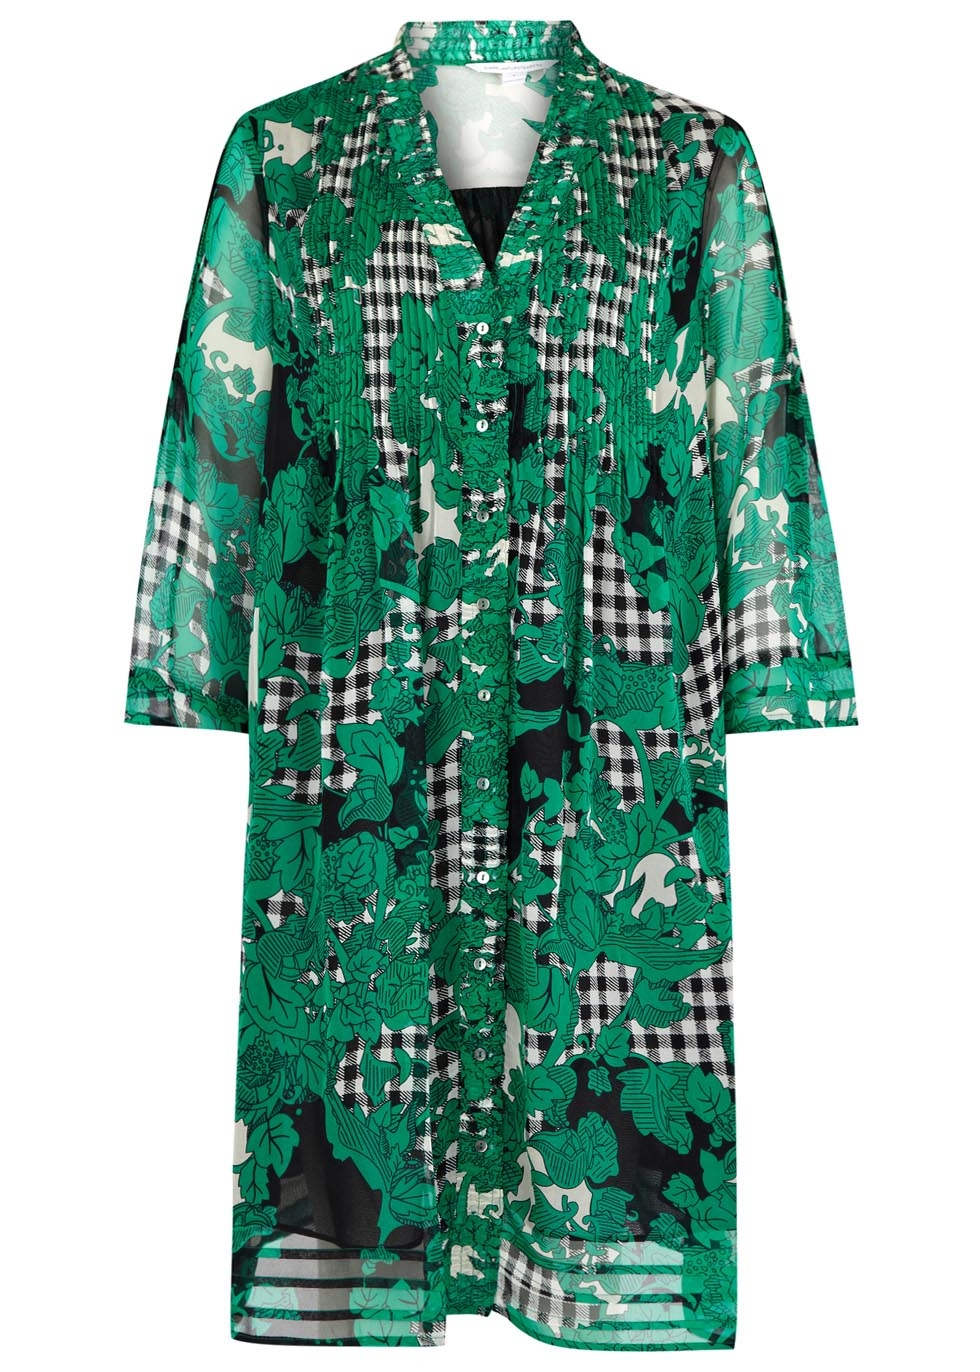 Diane Von Furstenberg printed silk dress, £400 - Copy